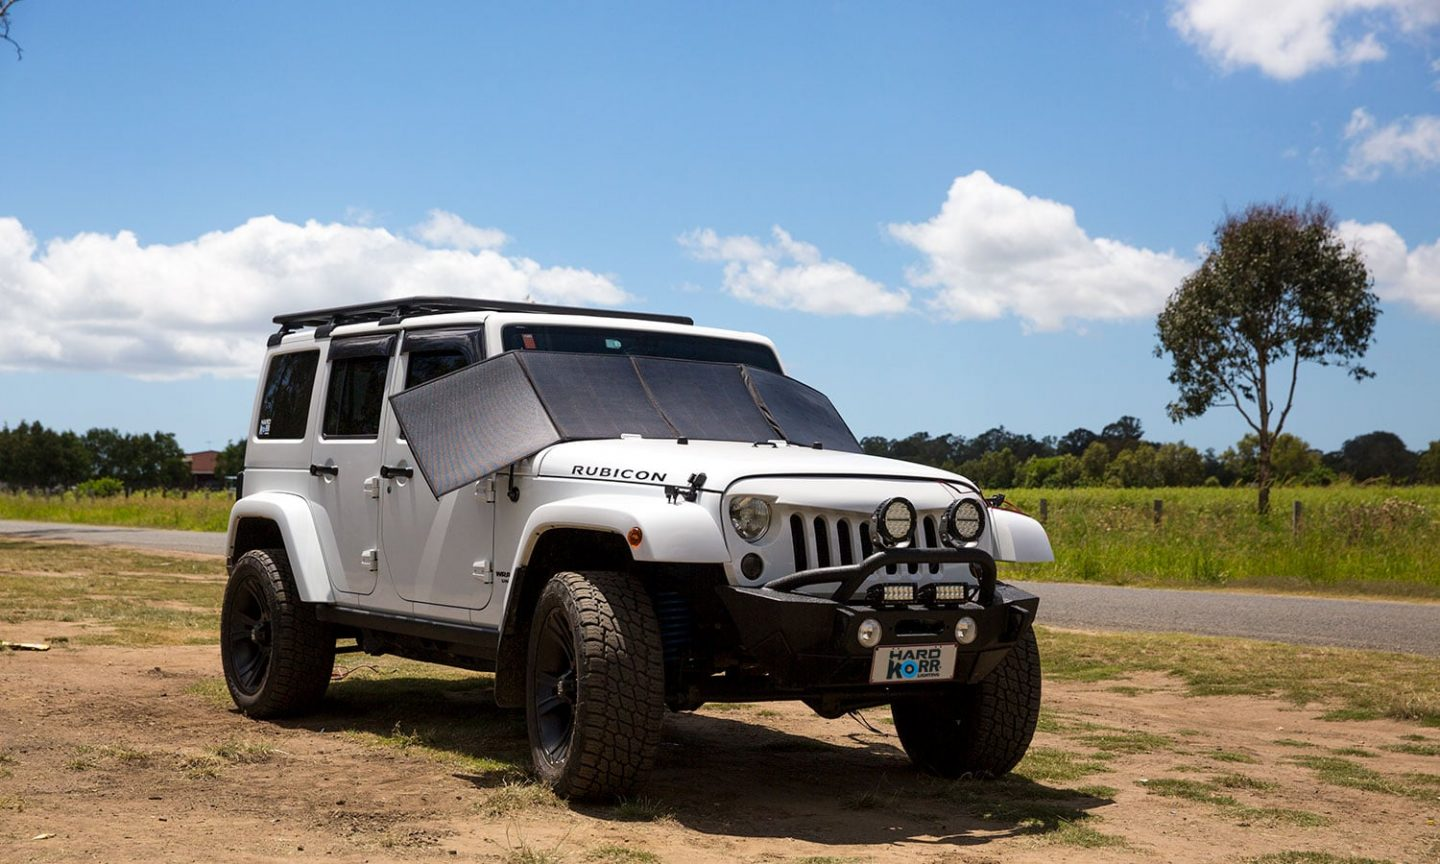 camping trip with your family: white Rubicon jeep on side of road.